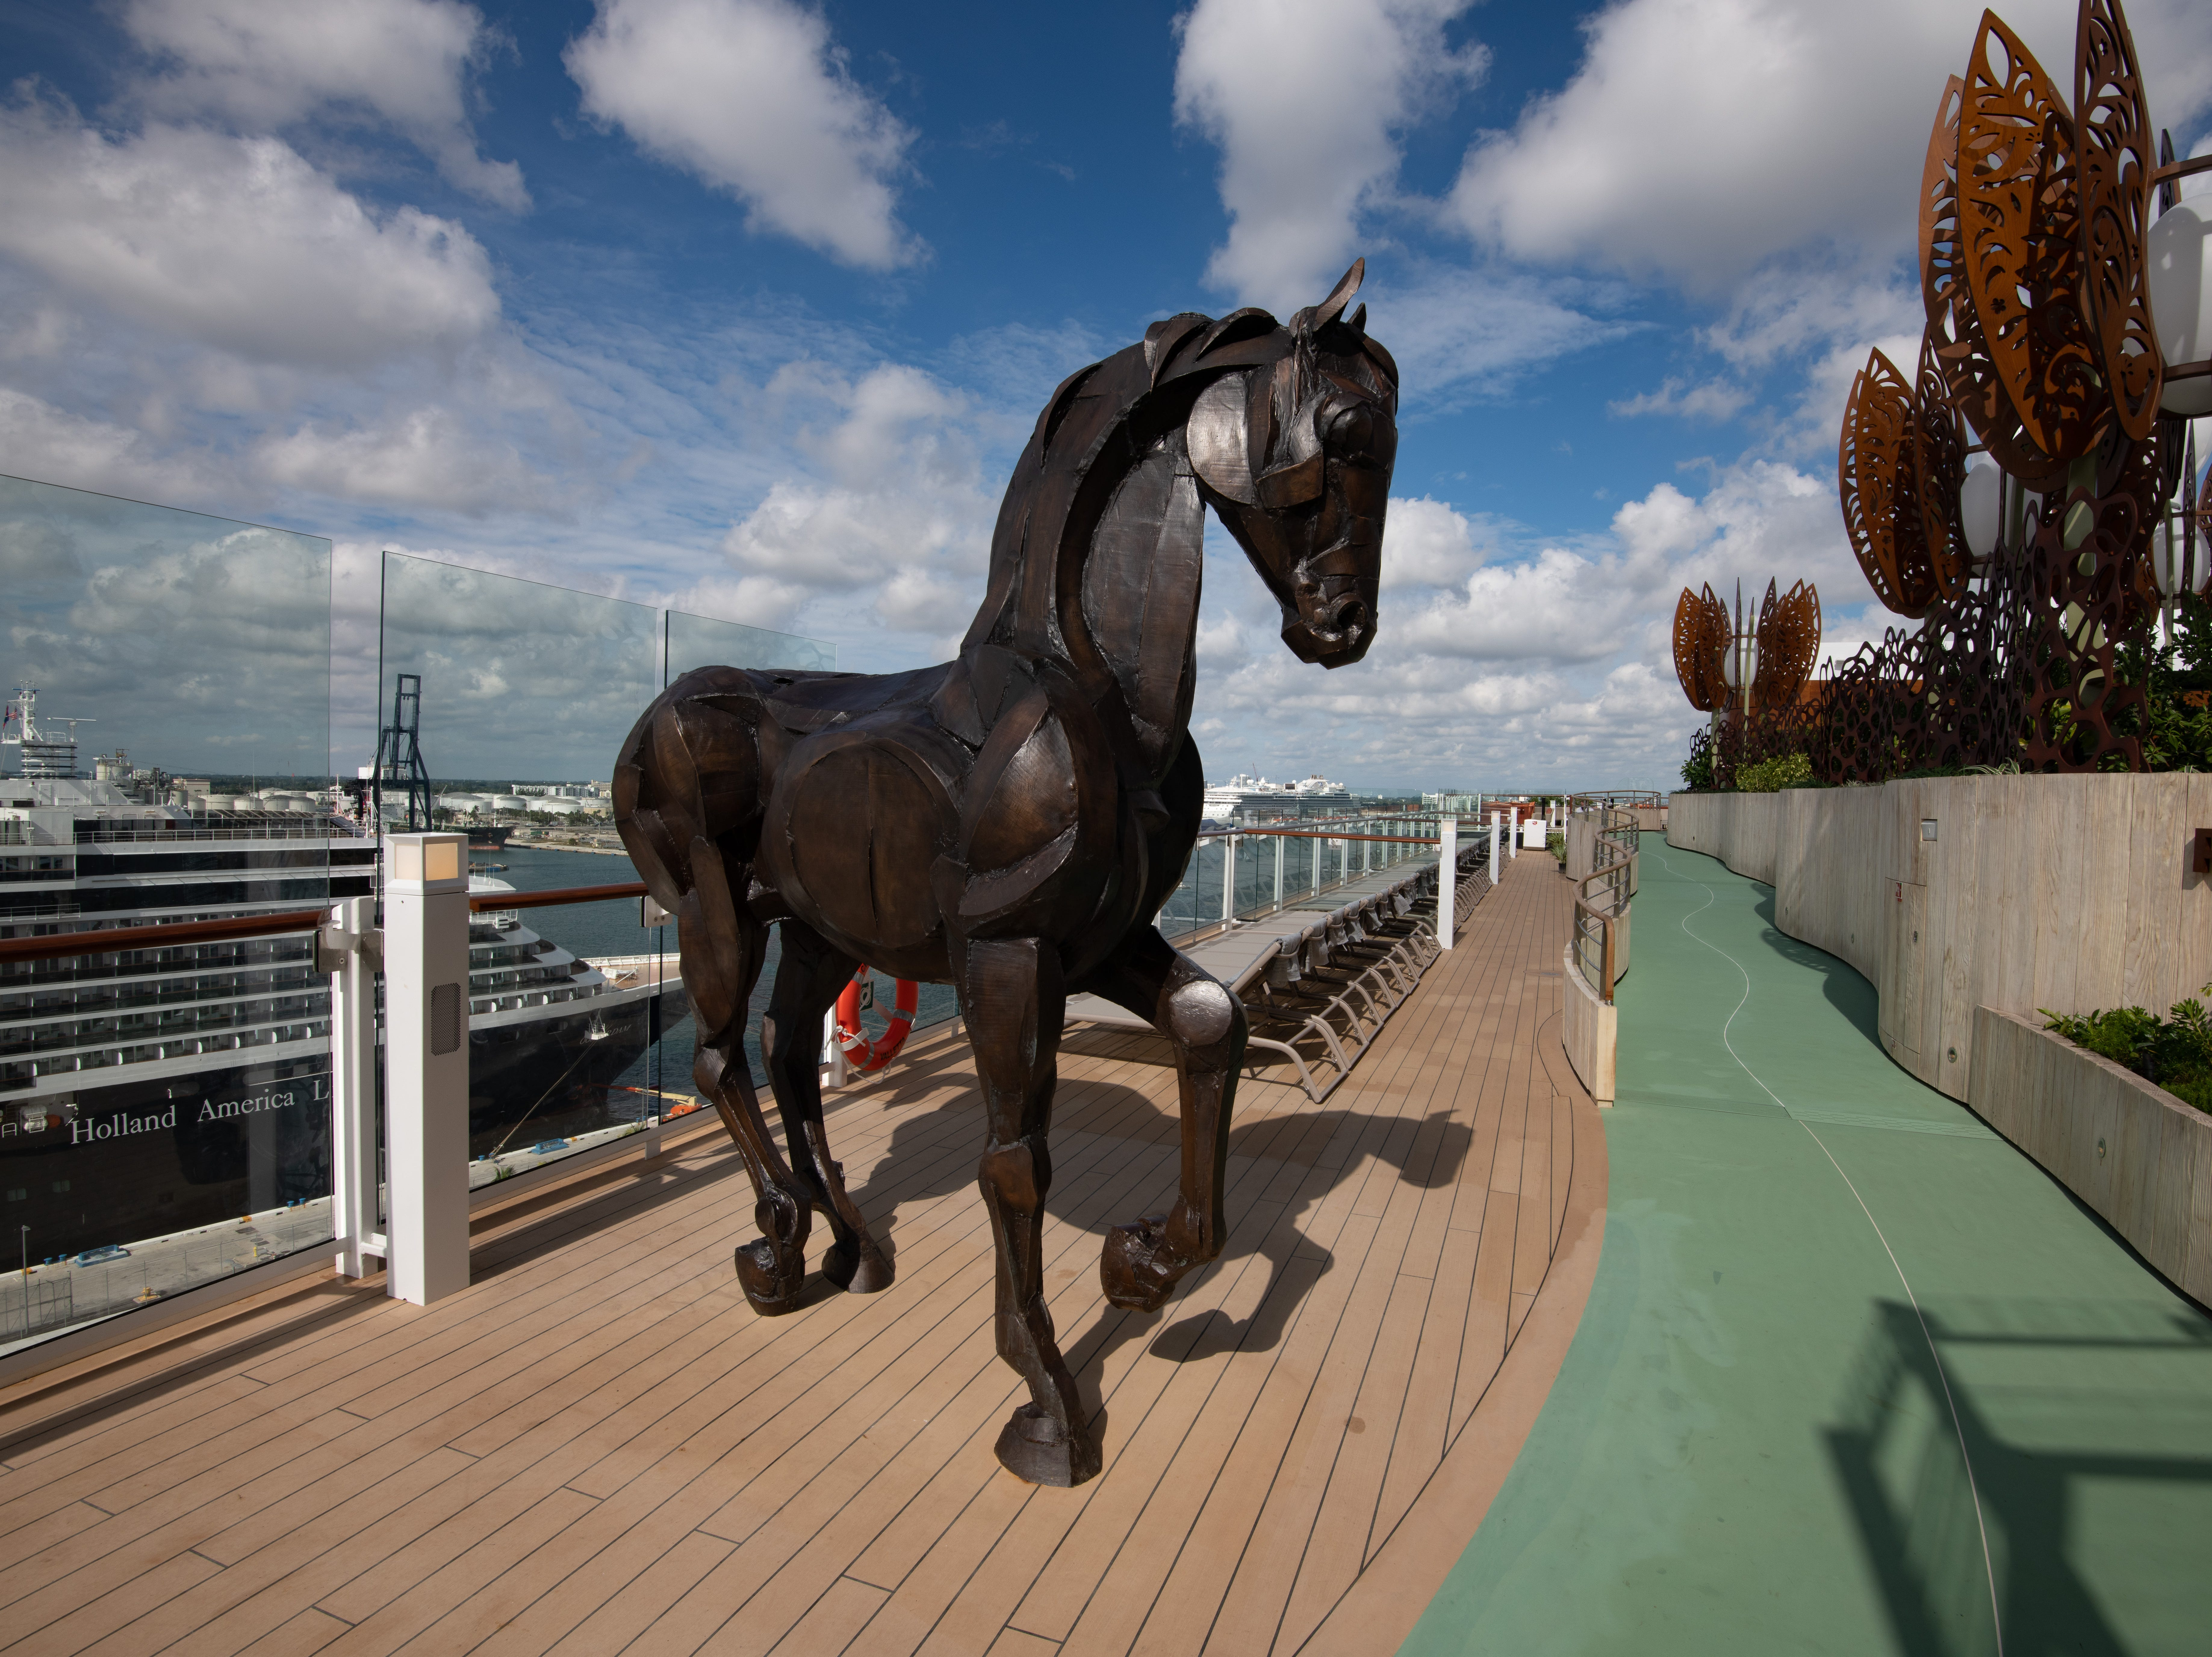 A sculpture of a horse stands guard just outside the Rooftop Garden.